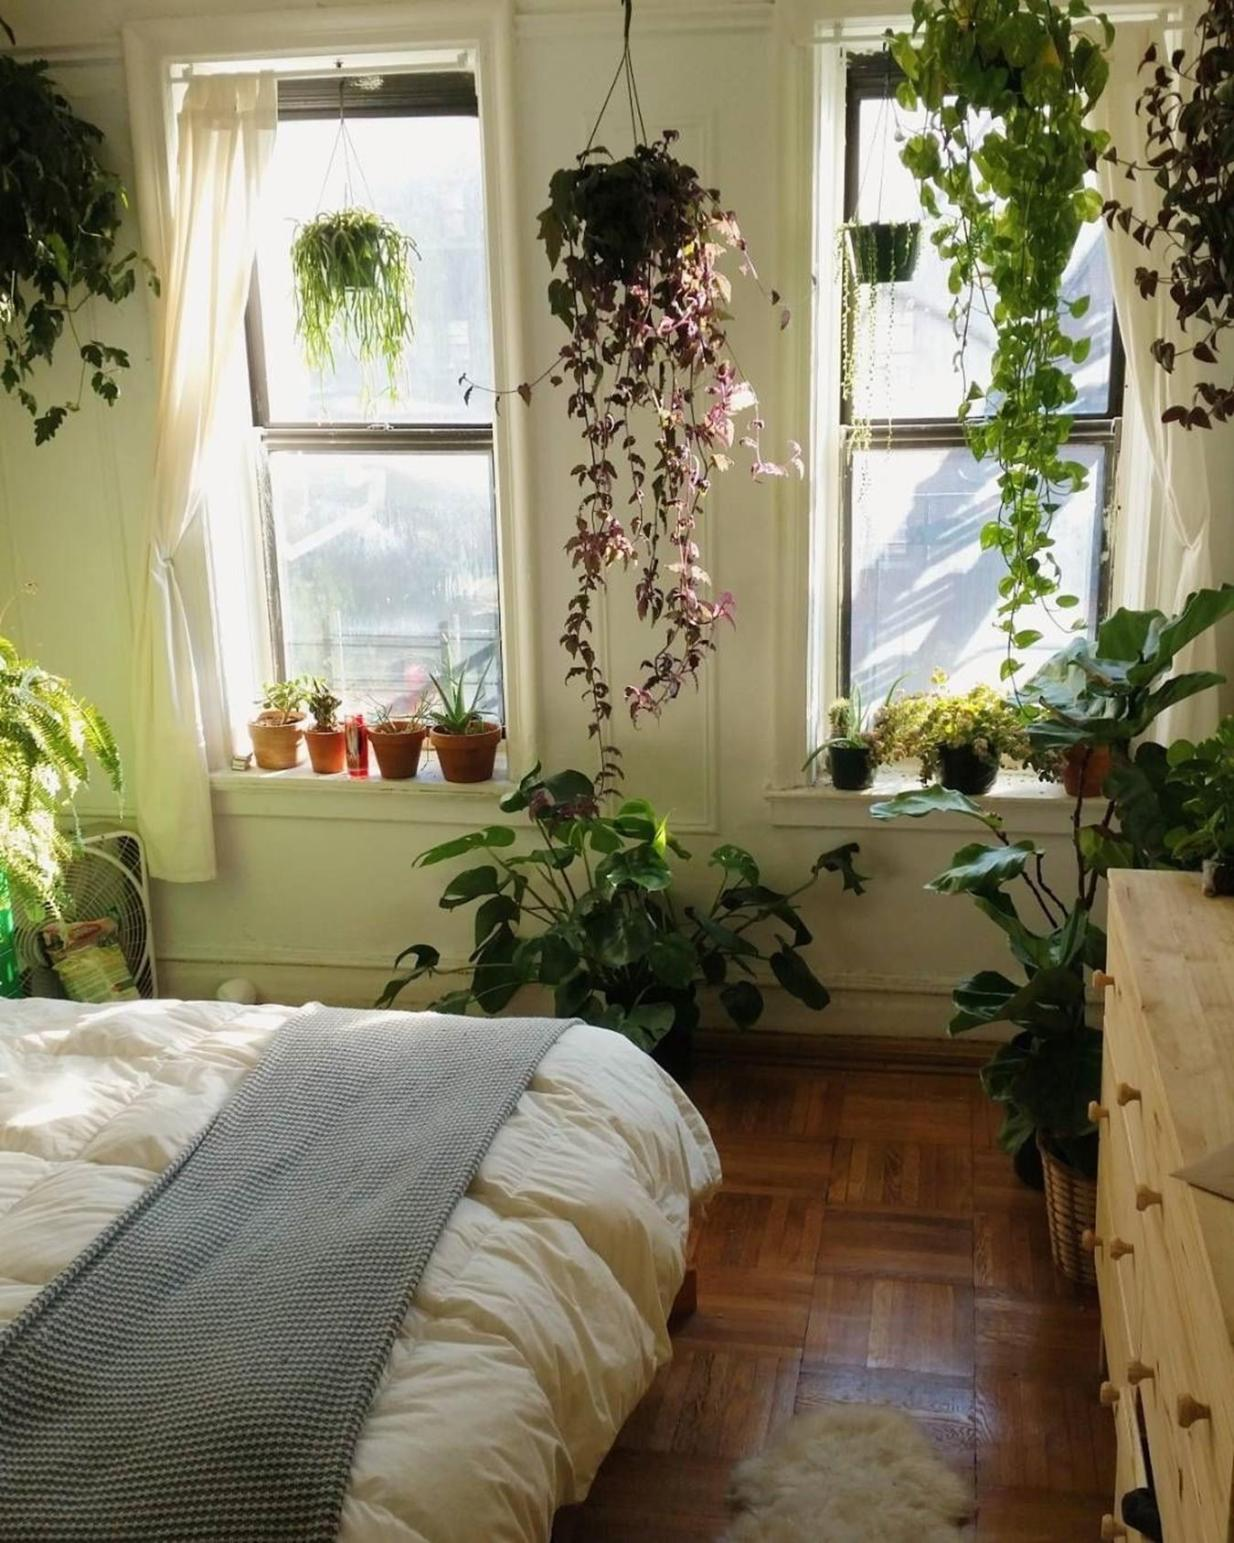 Urban Jungle Room Decor 23